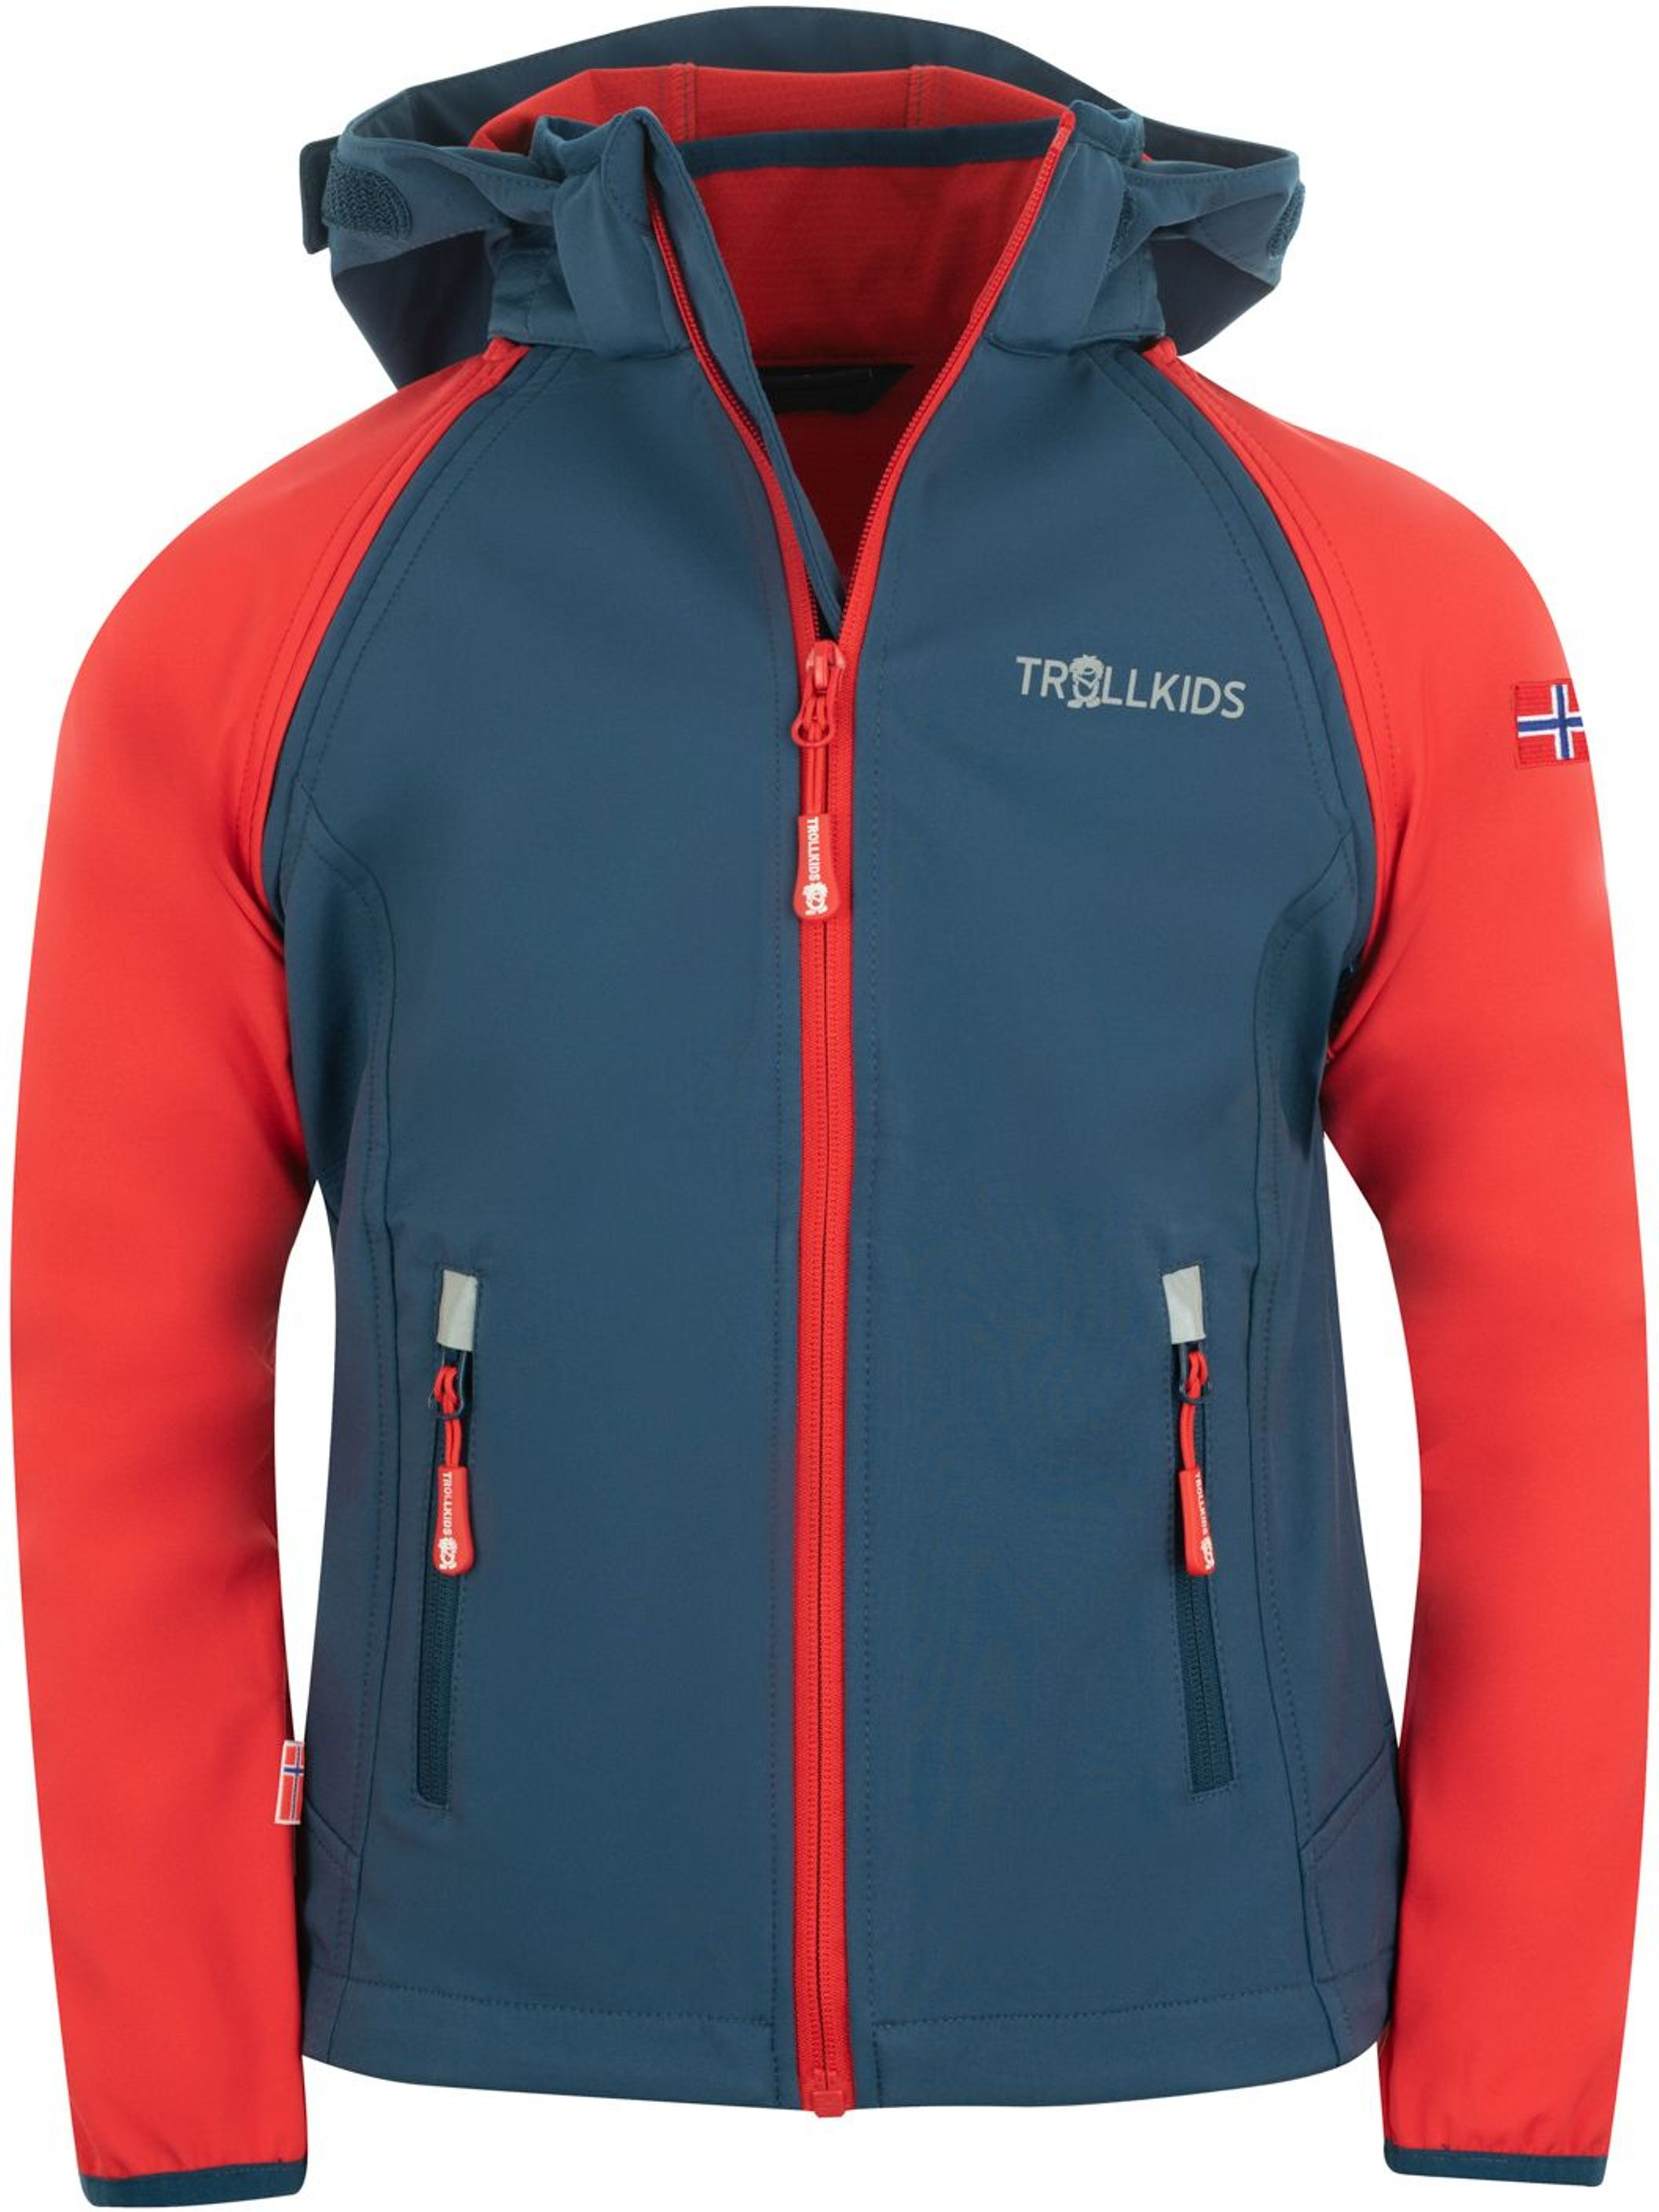 Trollkids Rondane Zip Off Jacket XT bright red/mystic blue